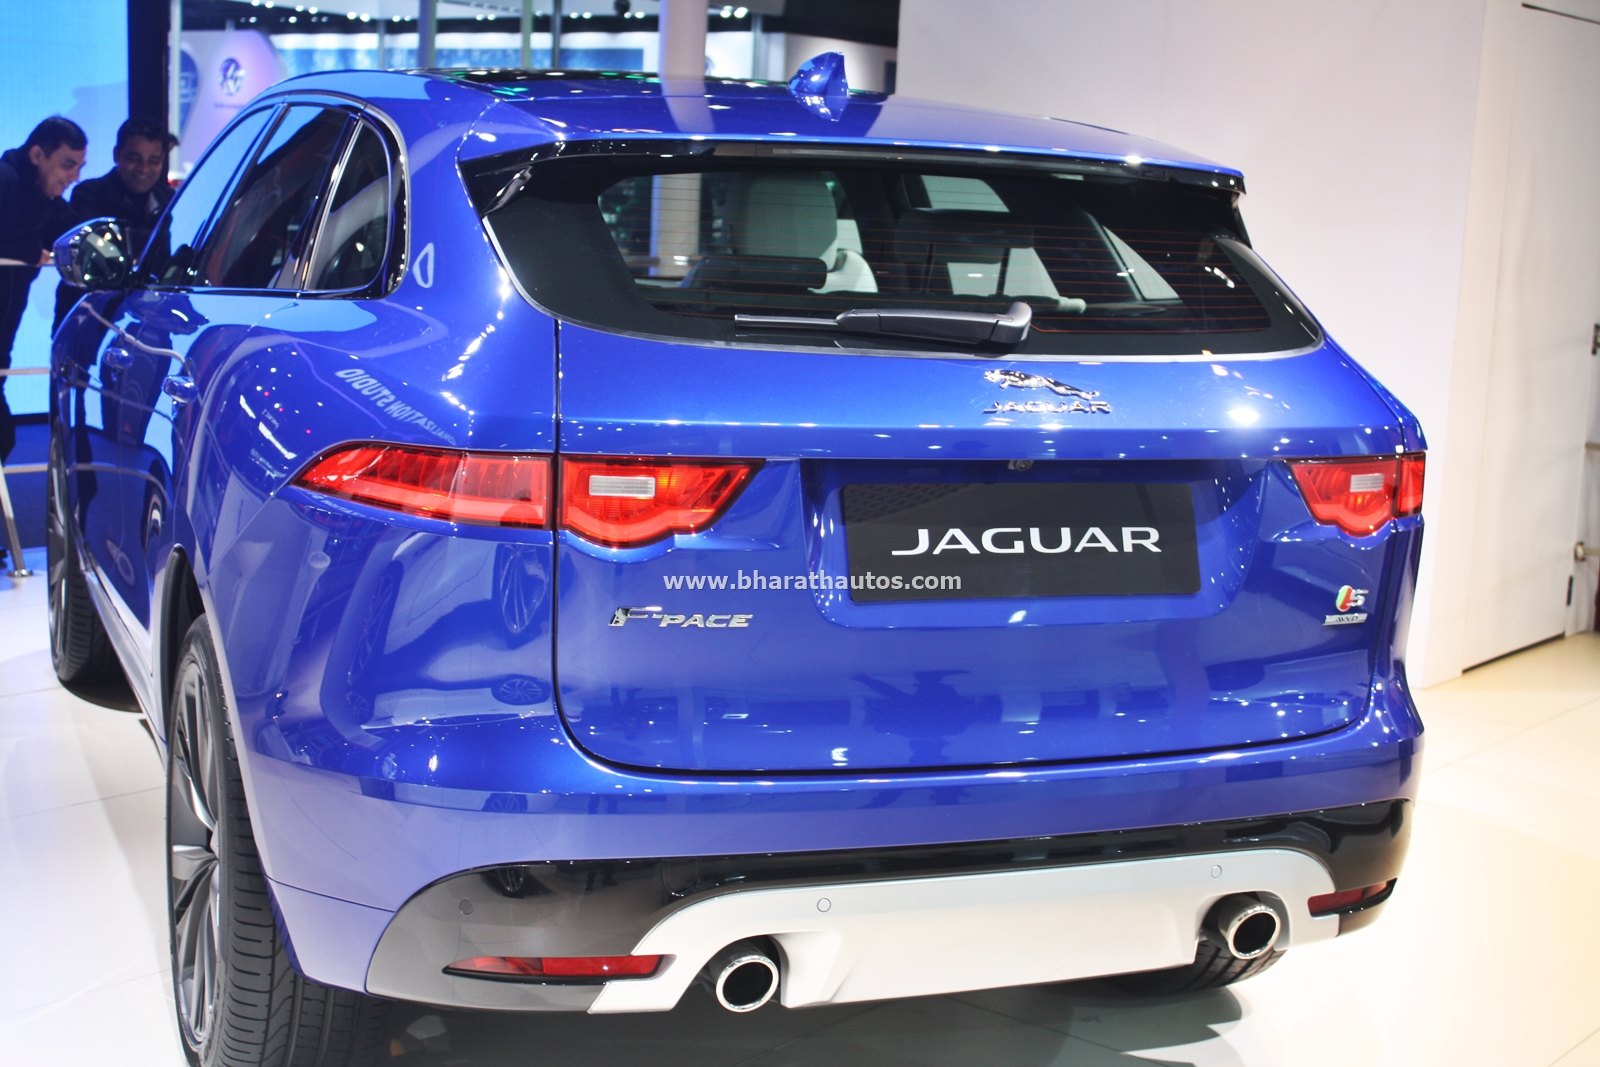 All New Jaguar F Pace SUV debuts in India at the 2016 Auto